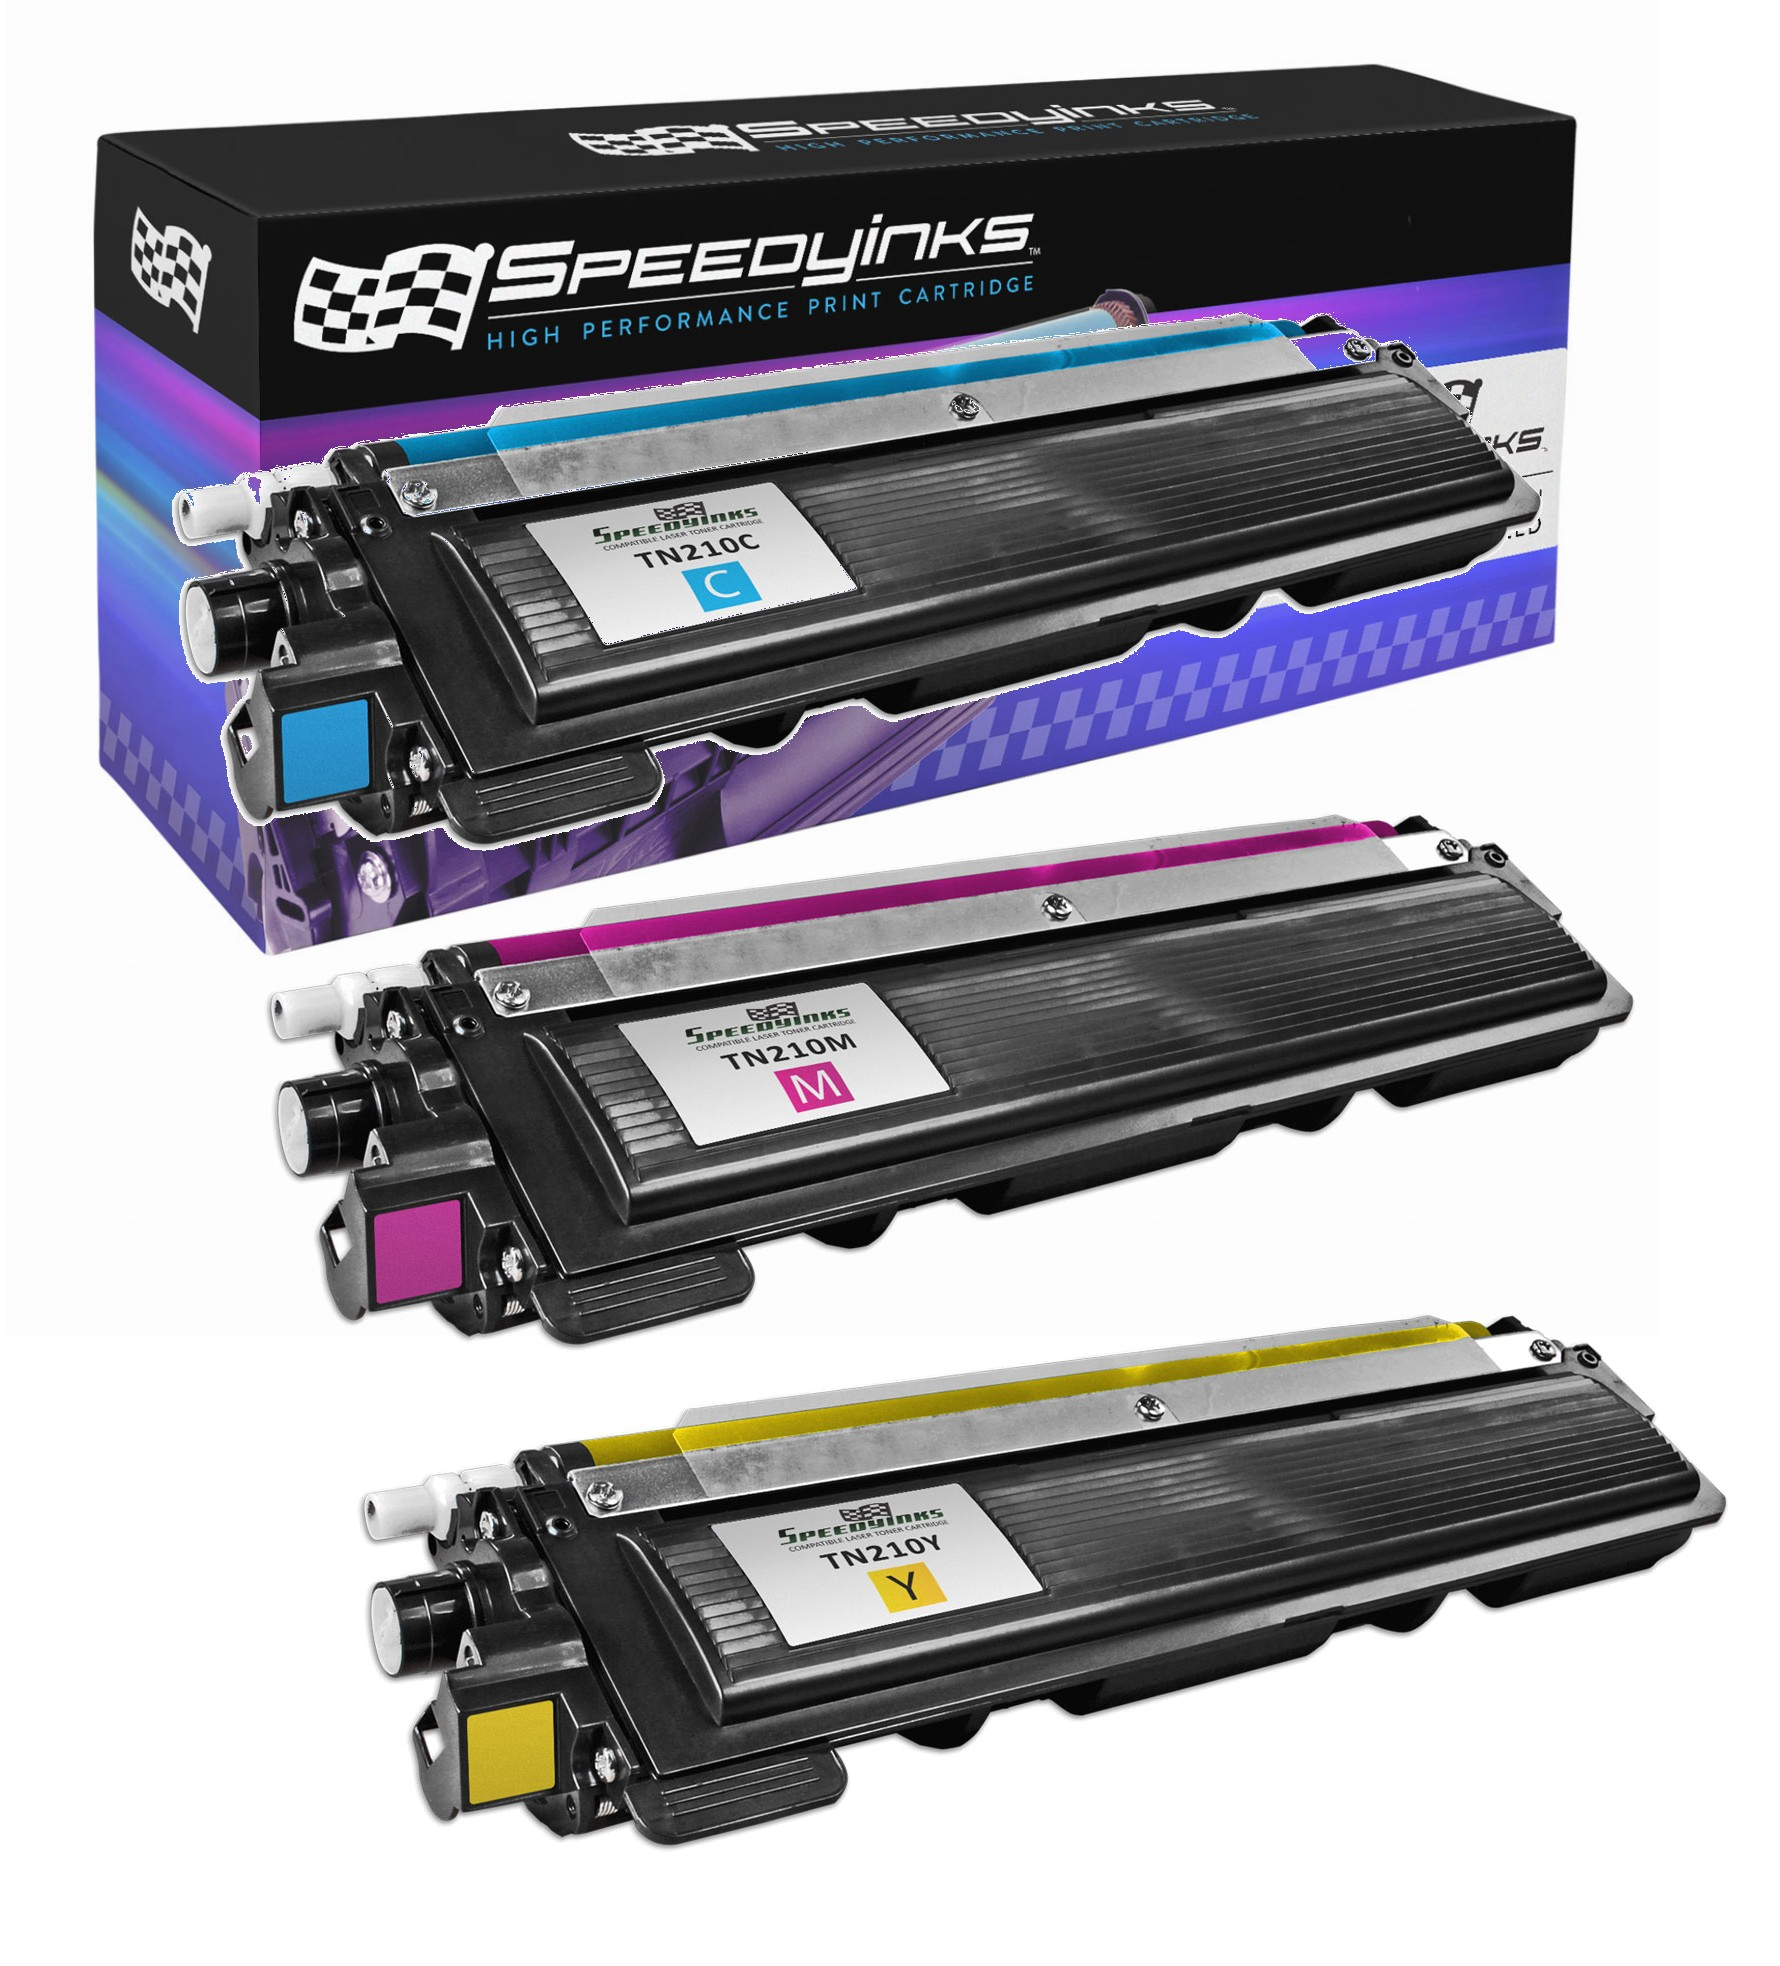 SpeedyInks - 3PK Color Compatible Toner Cartridge Replacement for Brother TN210 1 Cyan, 1 Yellow, 1 Magenta